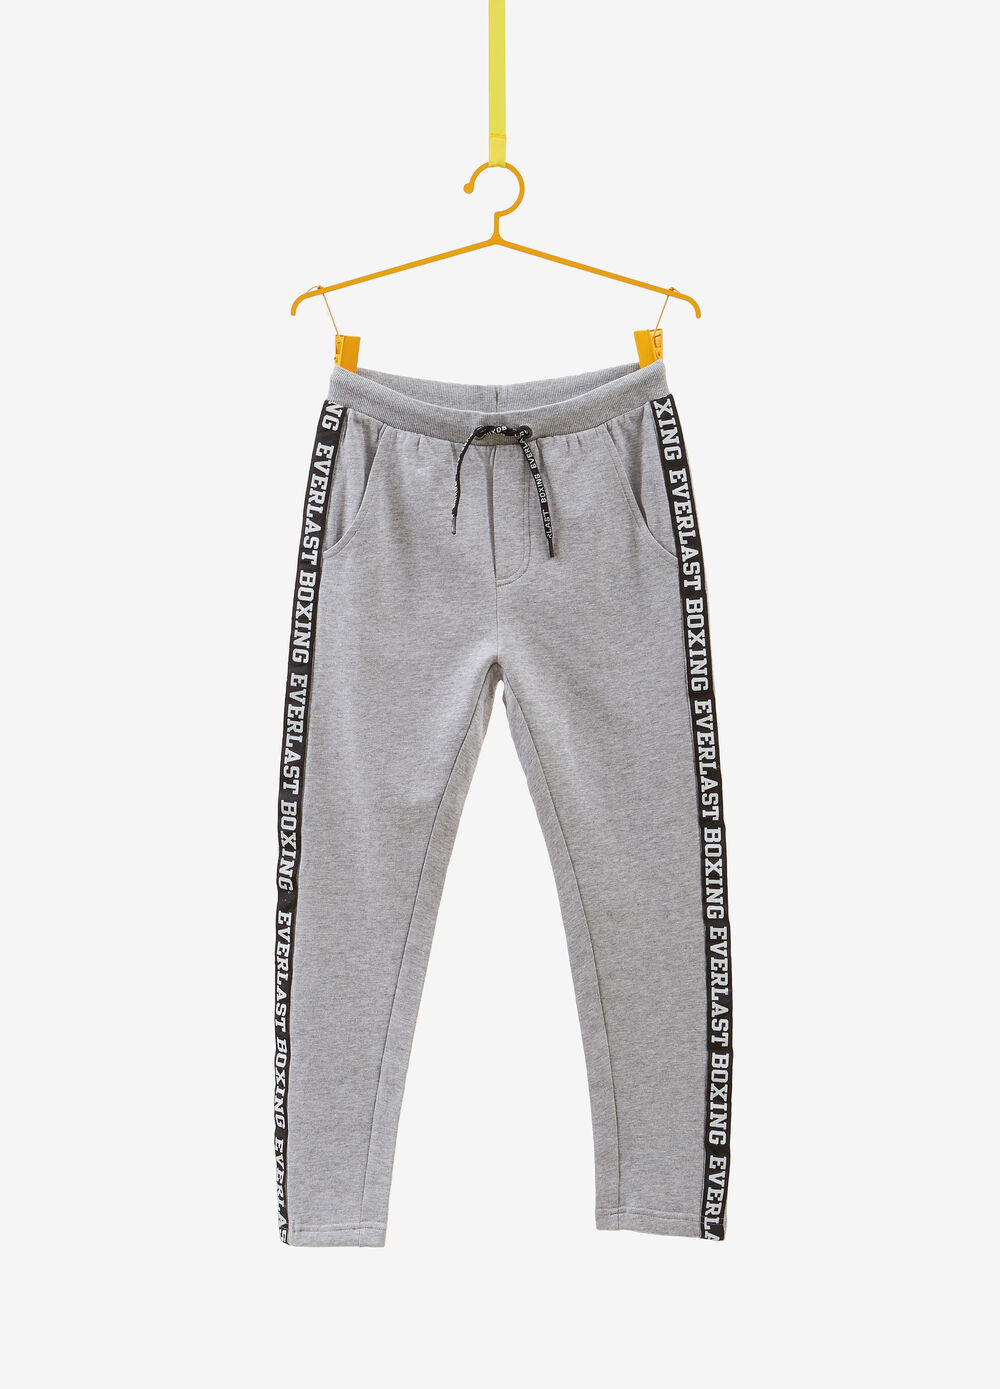 Joggers with bands and Everlast print